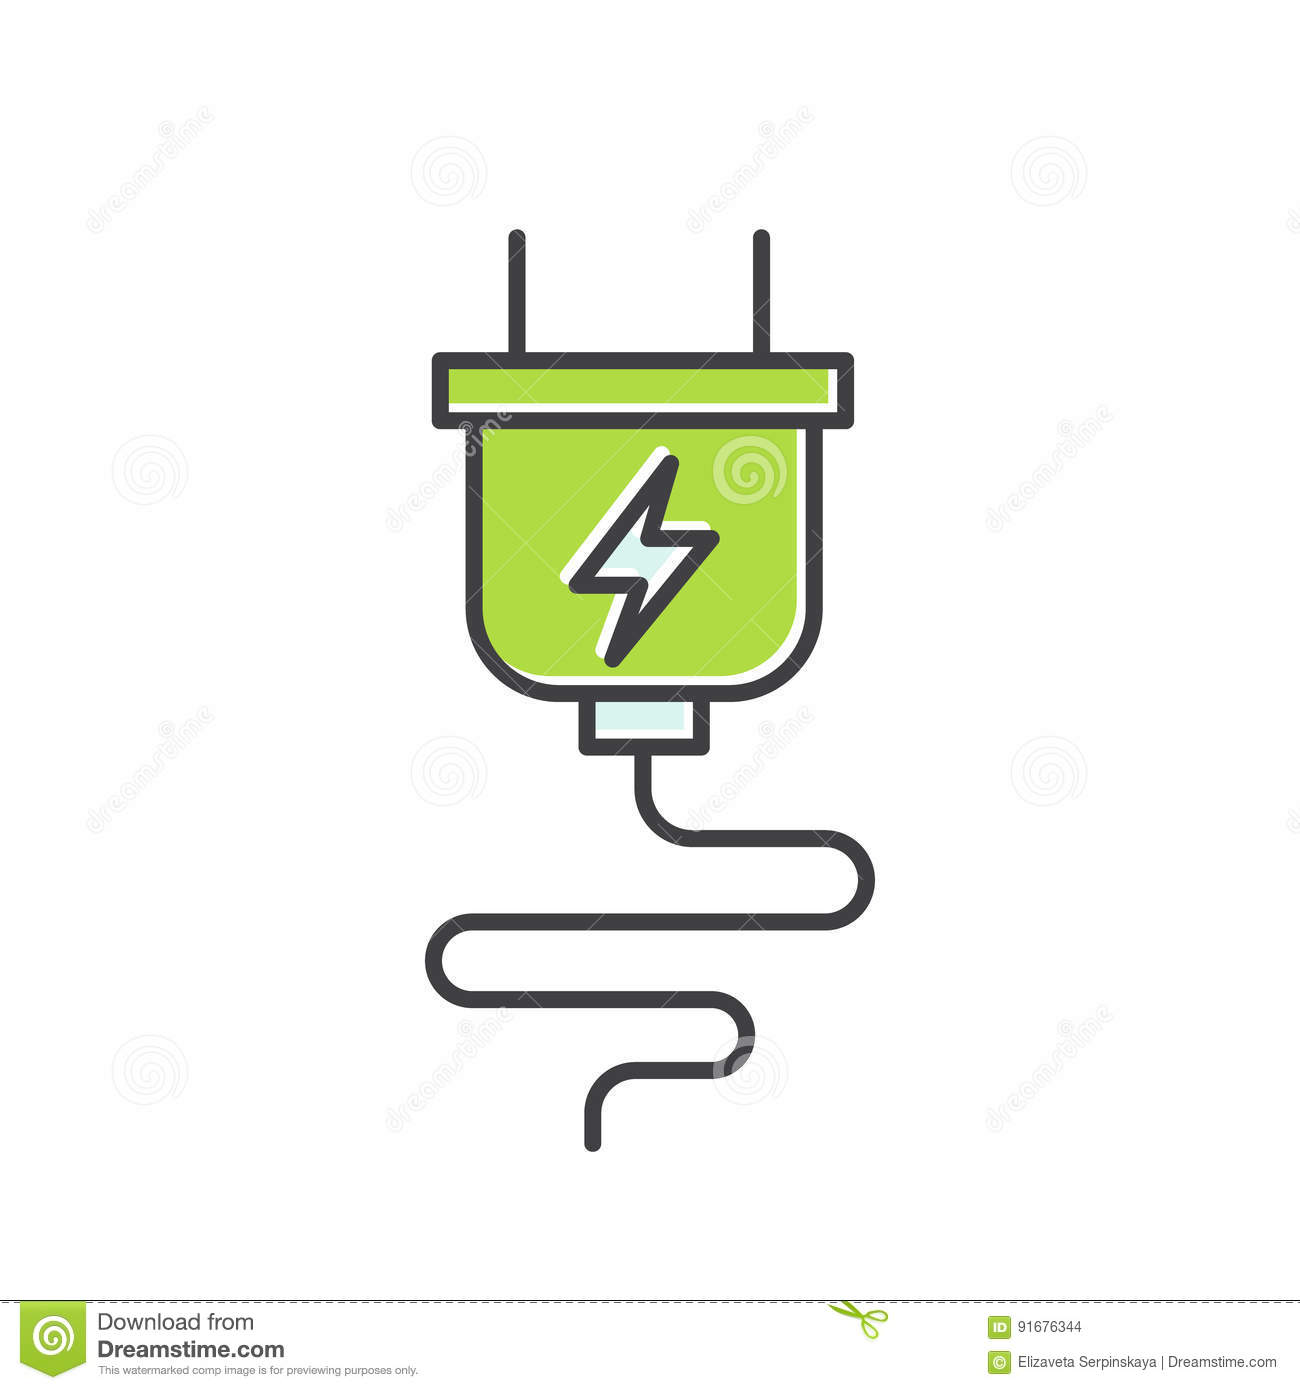 Logo of power supply plug charger electric and renewable energy logo of power supply plug charger electric and renewable energy symbol buycottarizona